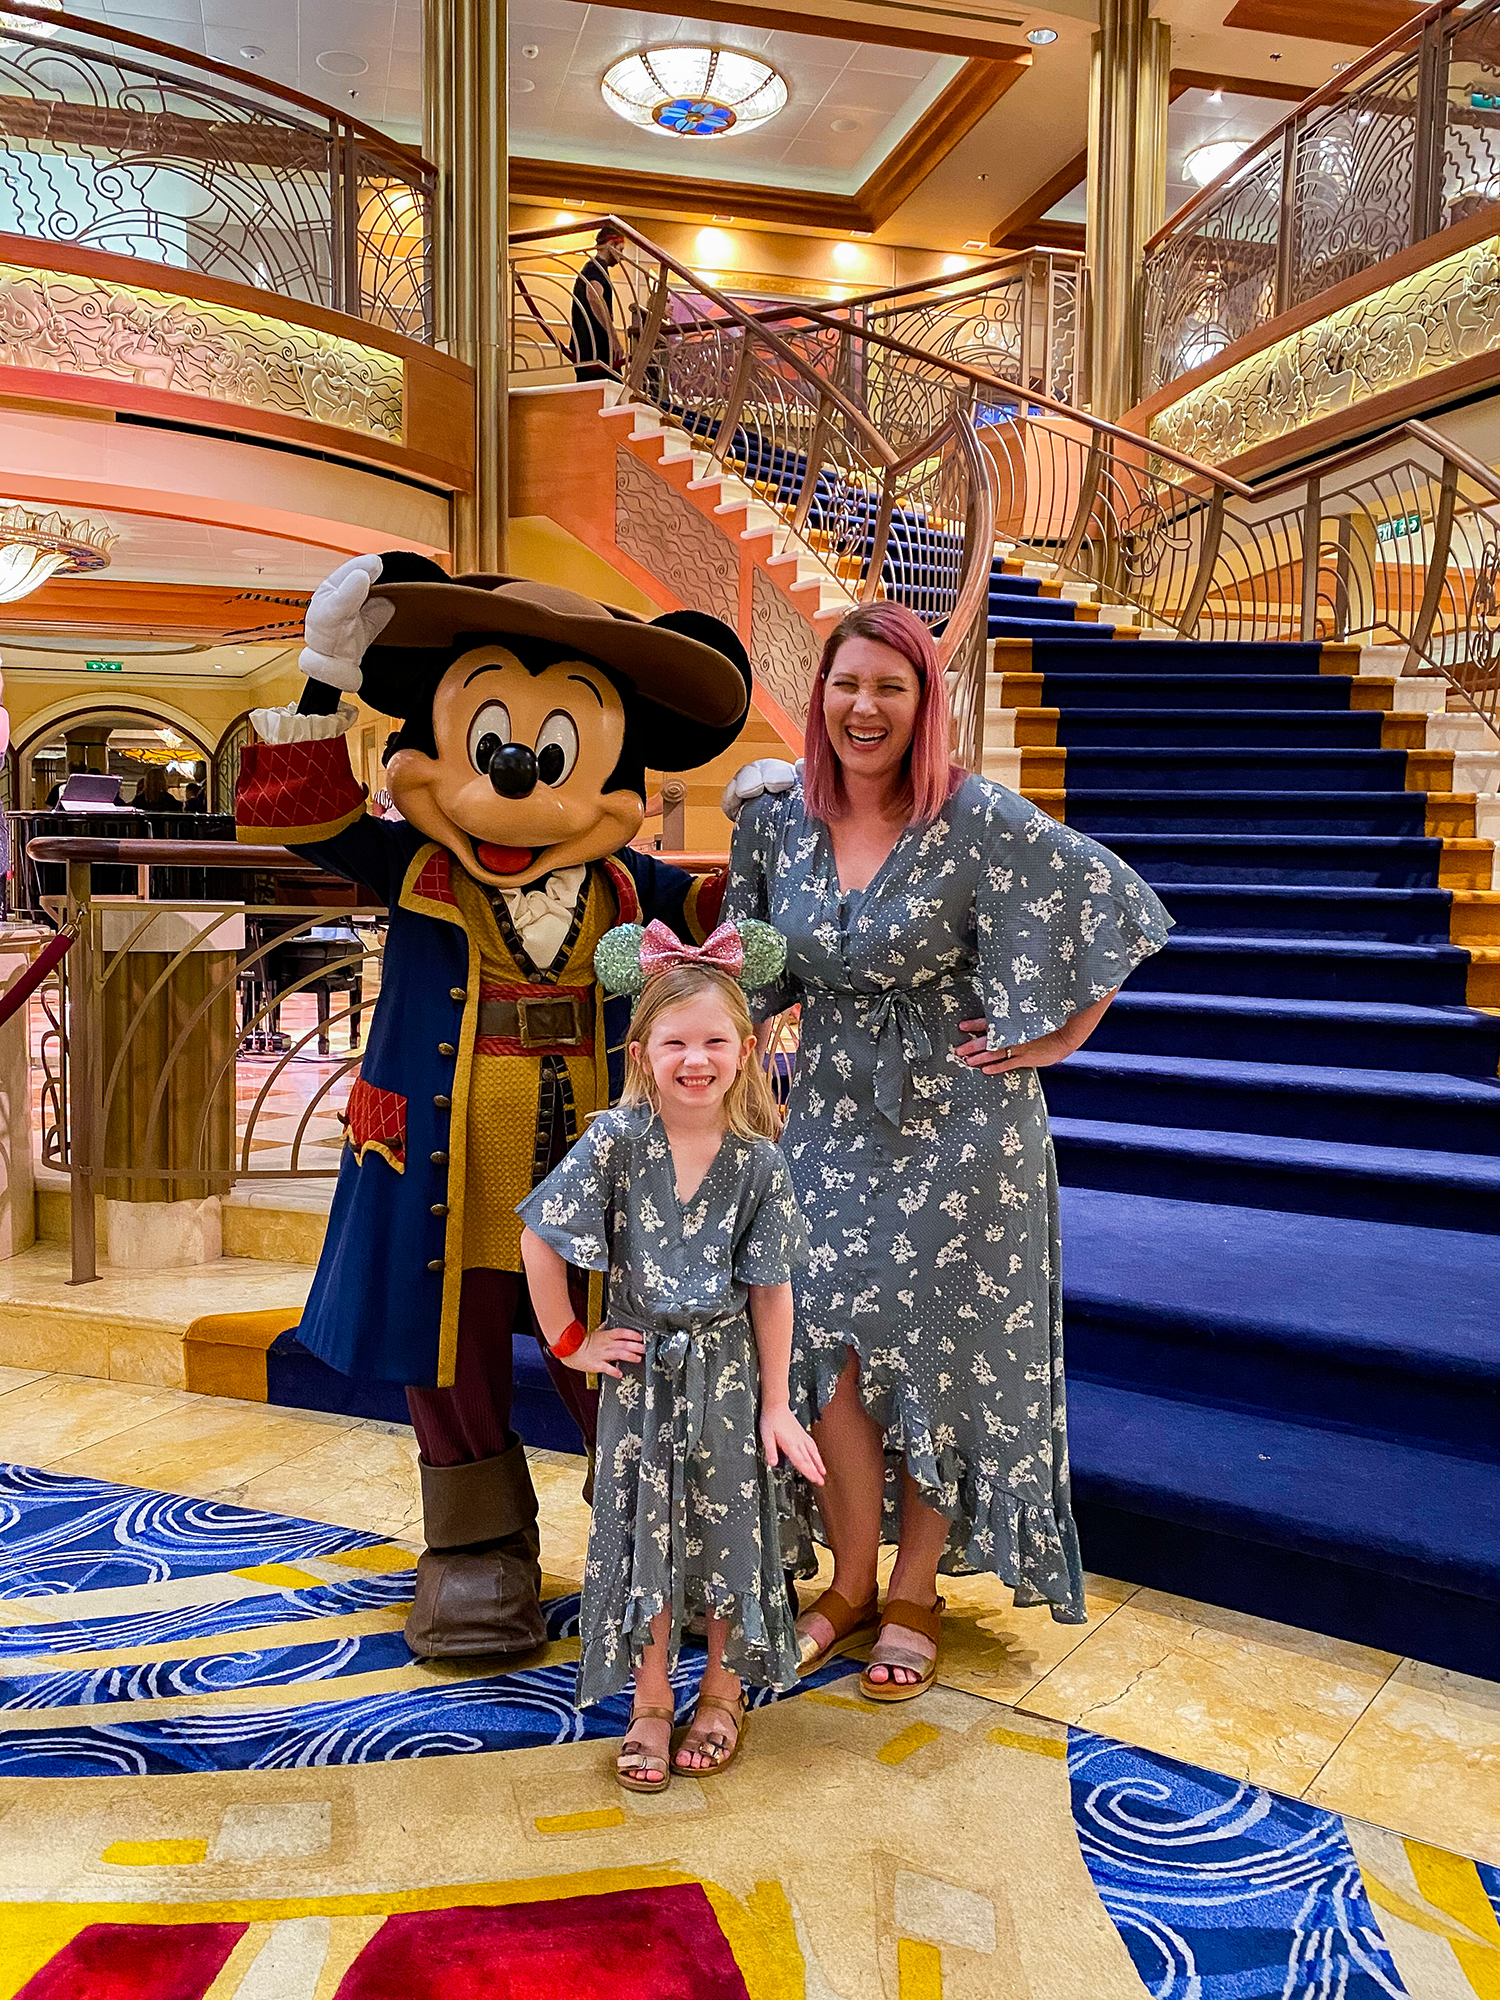 Wondering what to wear to Disney World? These outfits are perfect for a Disney World trip and a Disney Cruise!